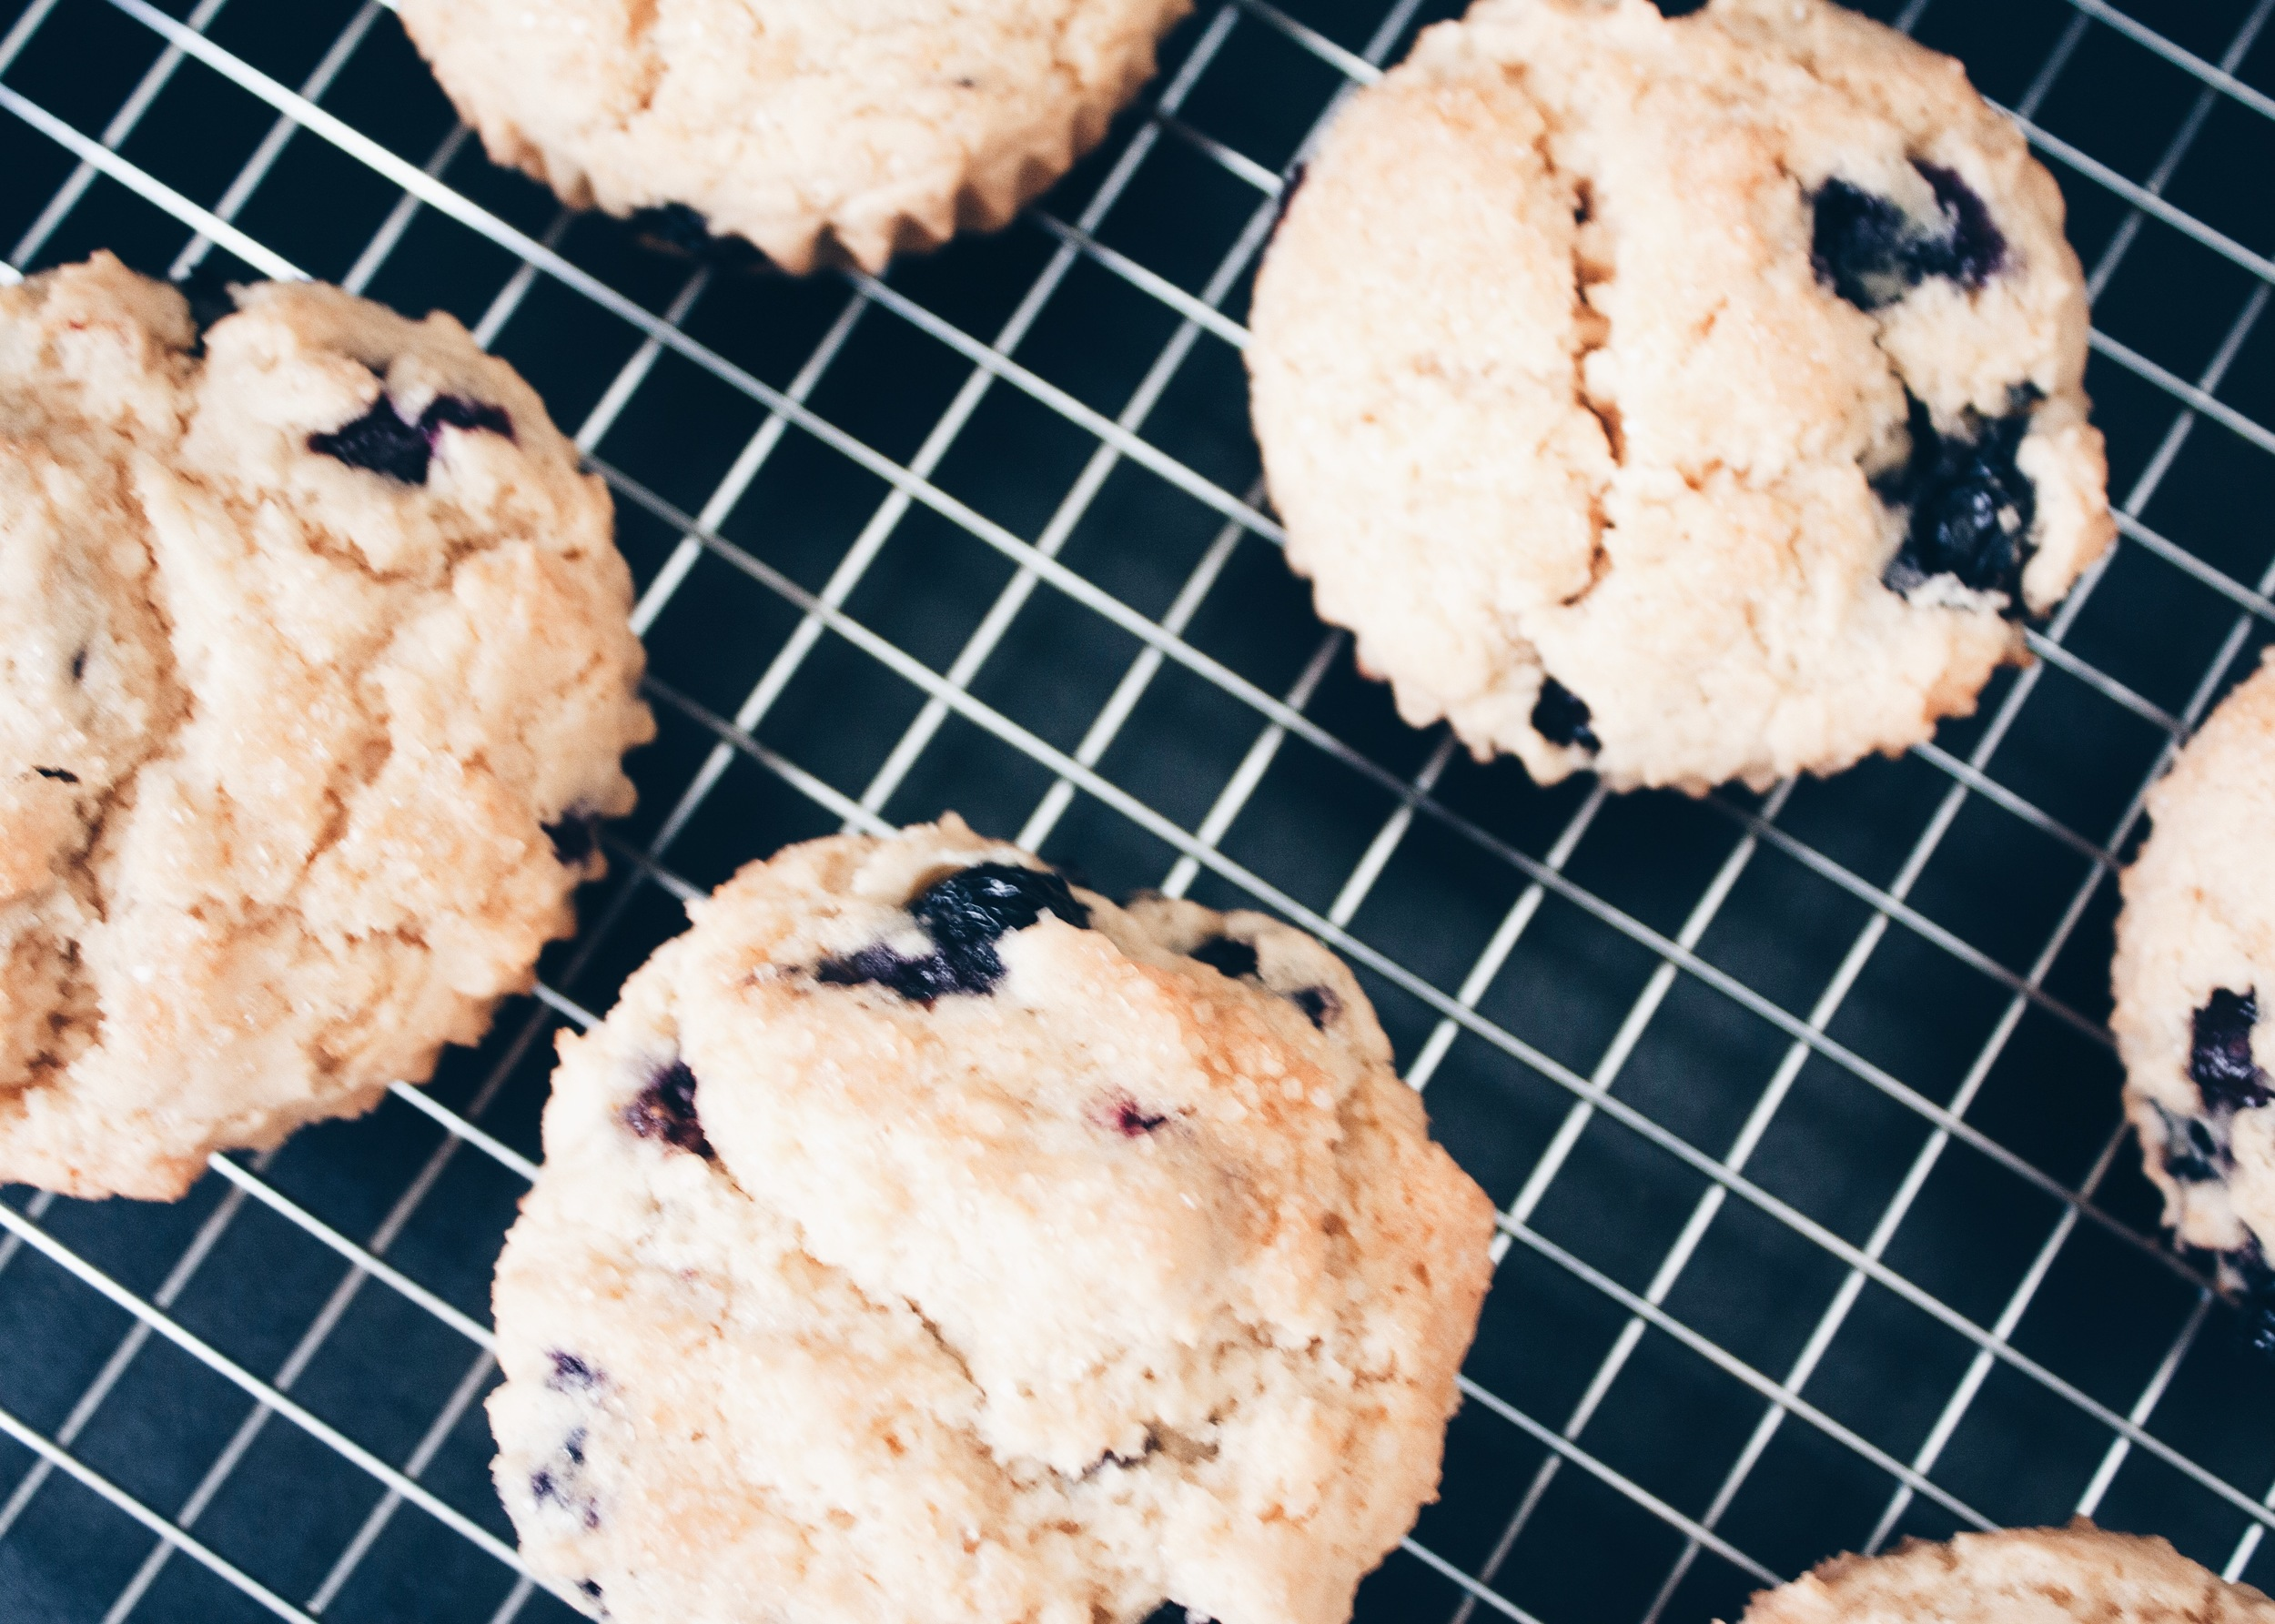 sam-c-perry-Easy-Gluten-Free-Blueberry-Biscuits-2.jpg